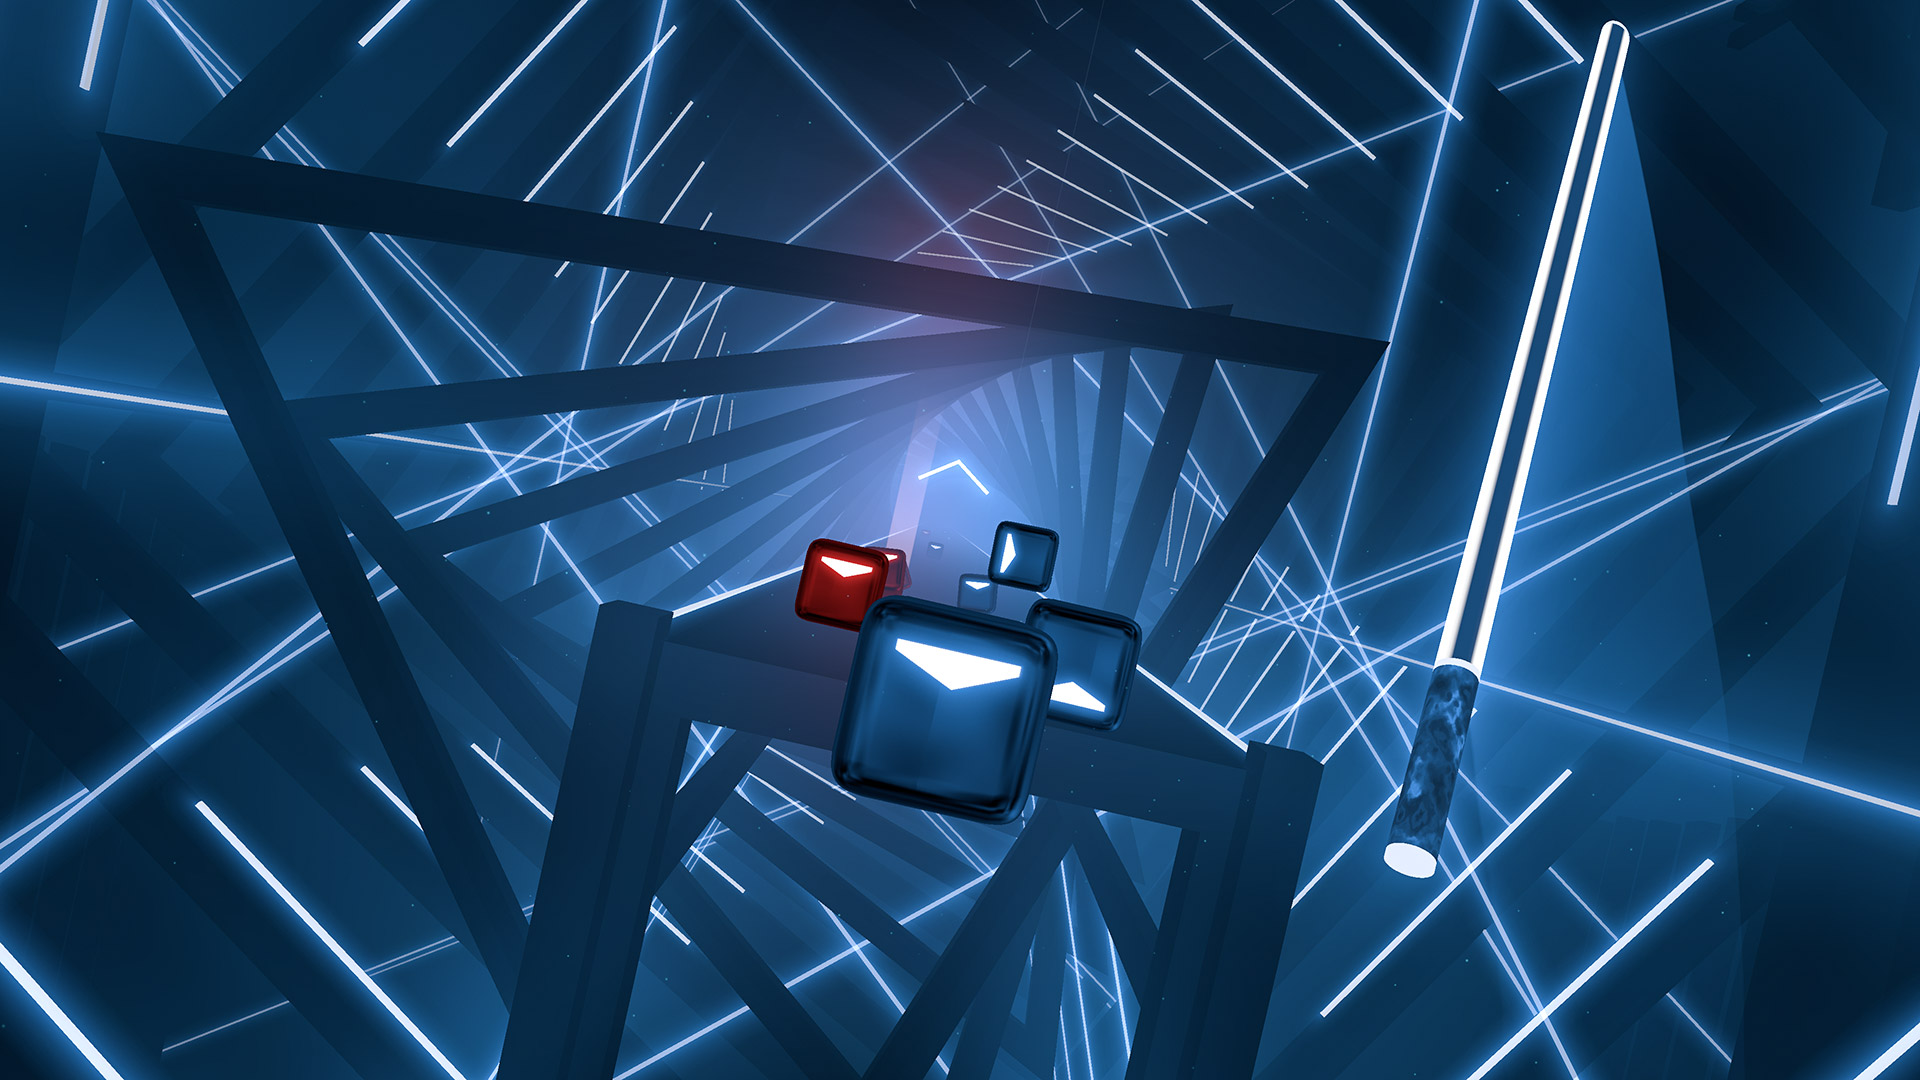 E3 2019: Beat Saber 360 Mode Feels like a New Way to Play